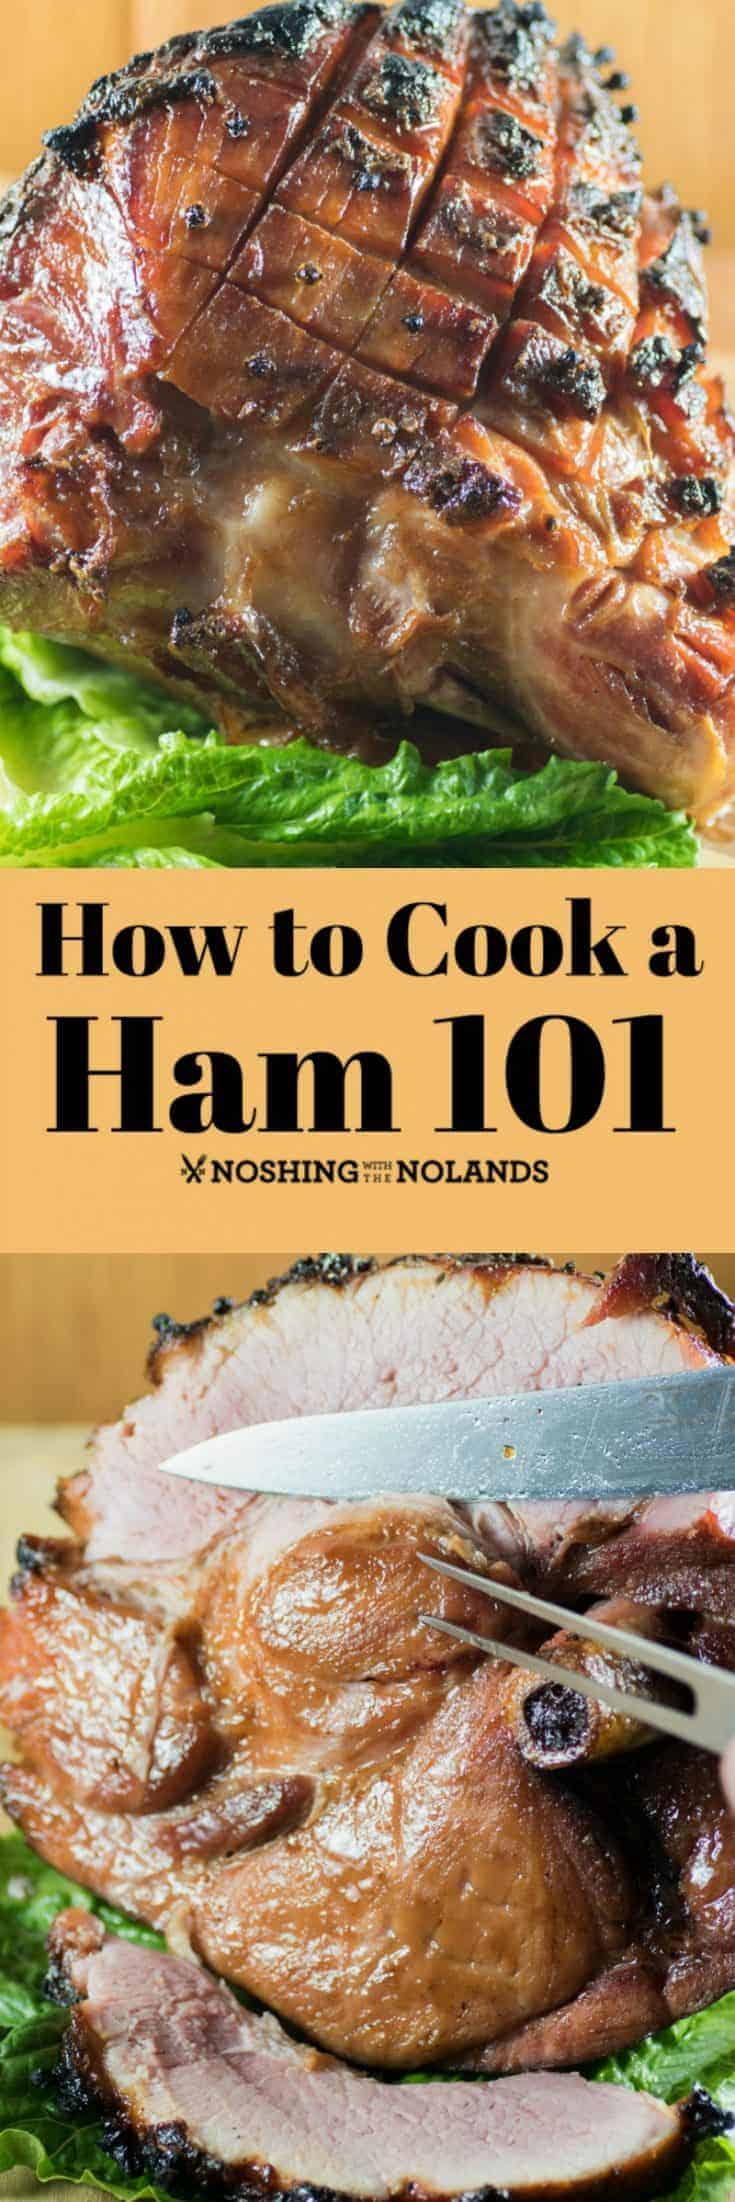 How to Cook a Ham 101 will give you a gorgeous ham each time. The glaze for this recipe is totaly amazing!!  #ham #howto #baked #ccok